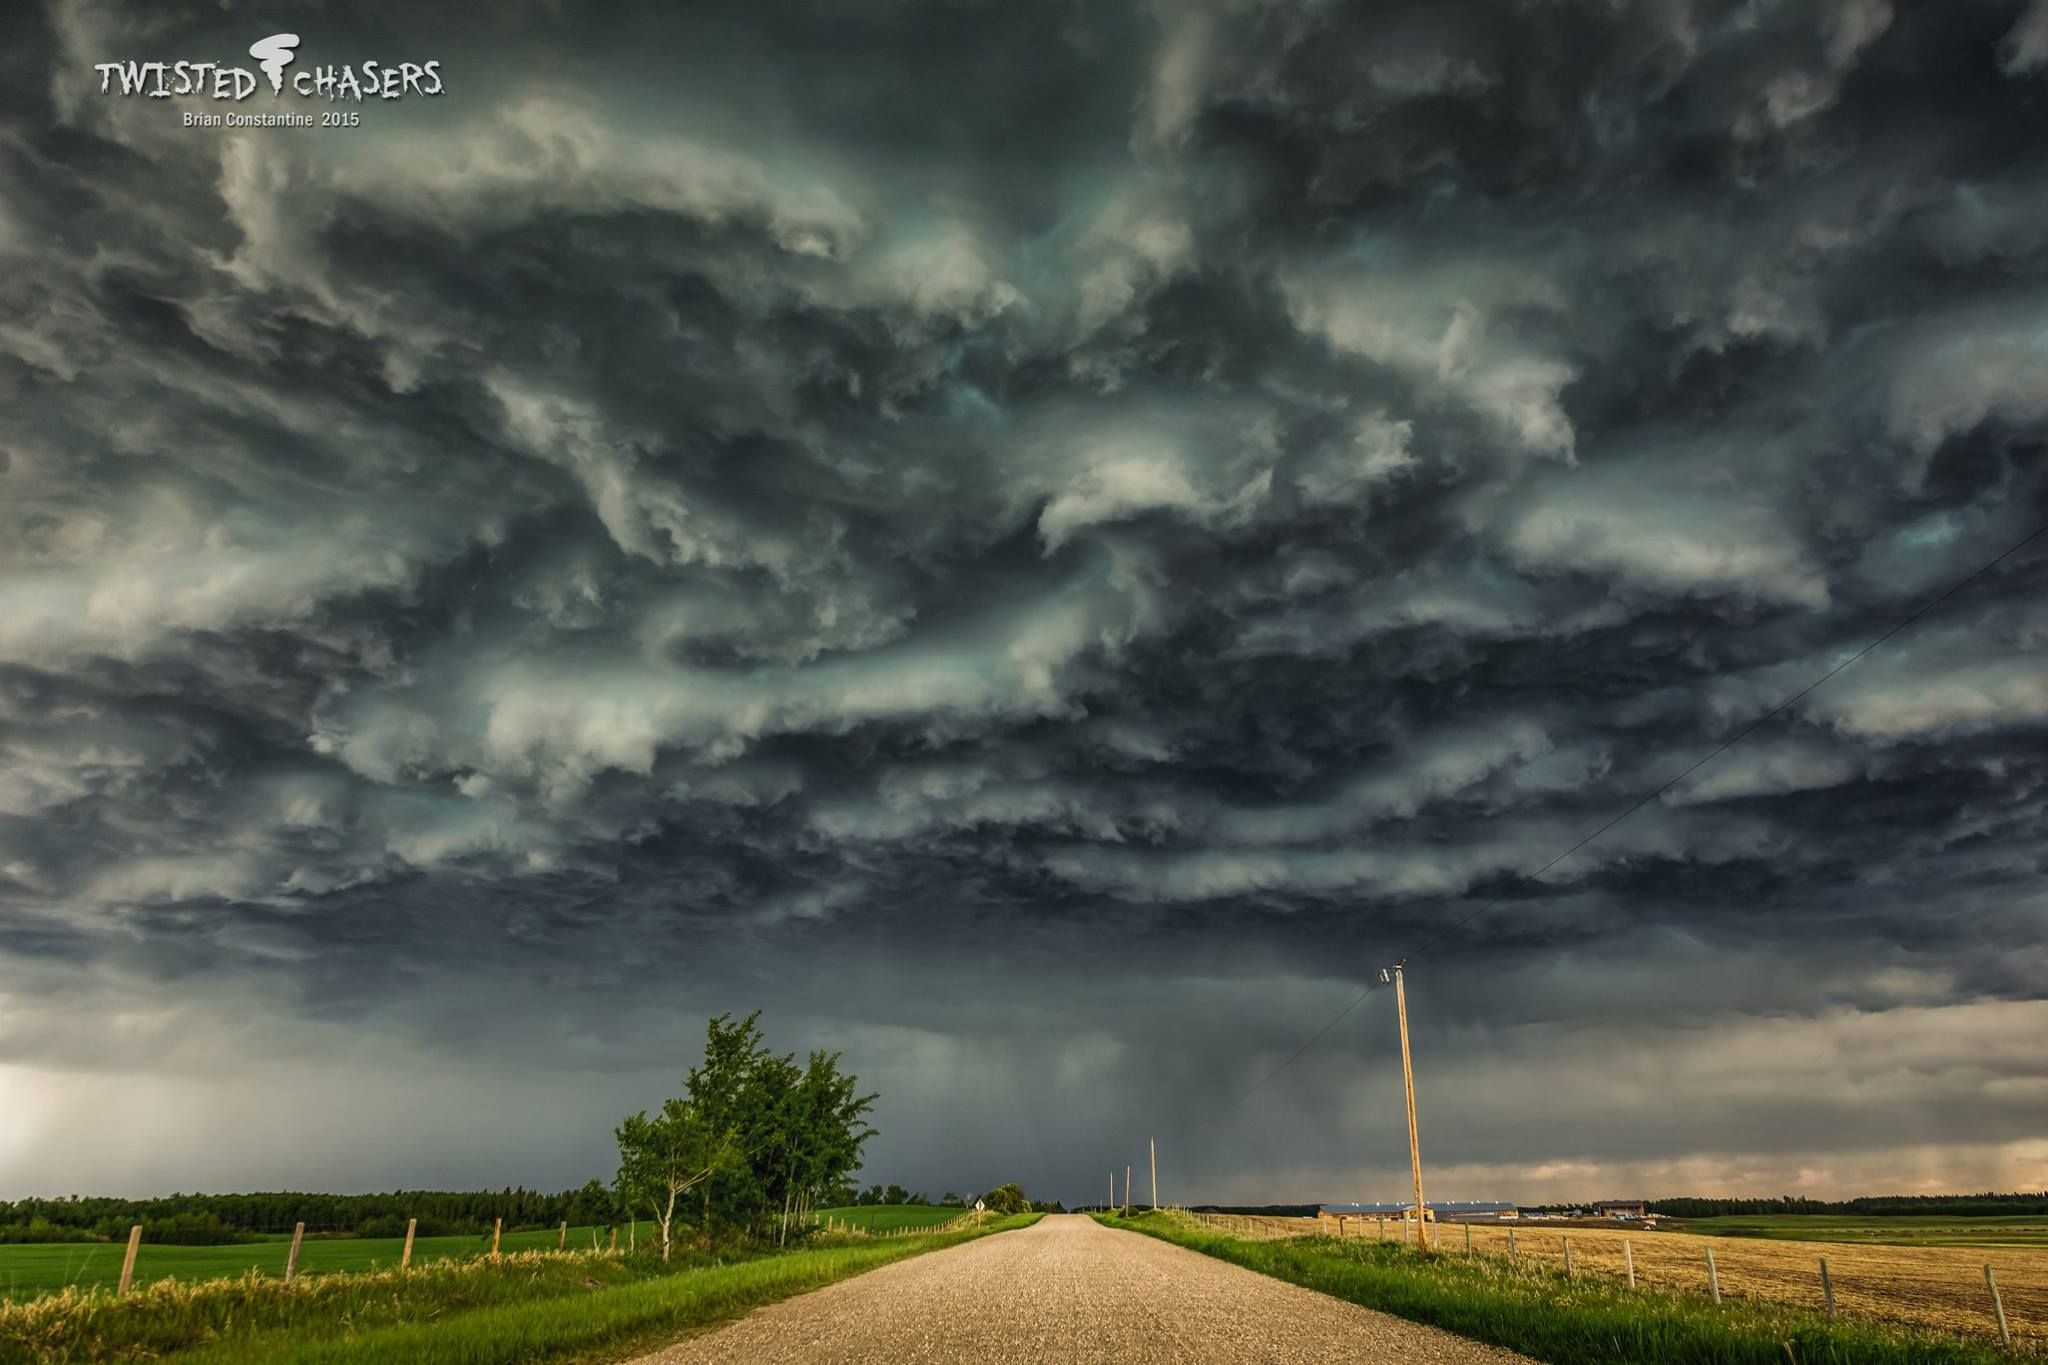 Taken on a nice Sunday afternoon drive (May 31, 2015) near Lacombe, Alberta as storm season gears up from us in the north.